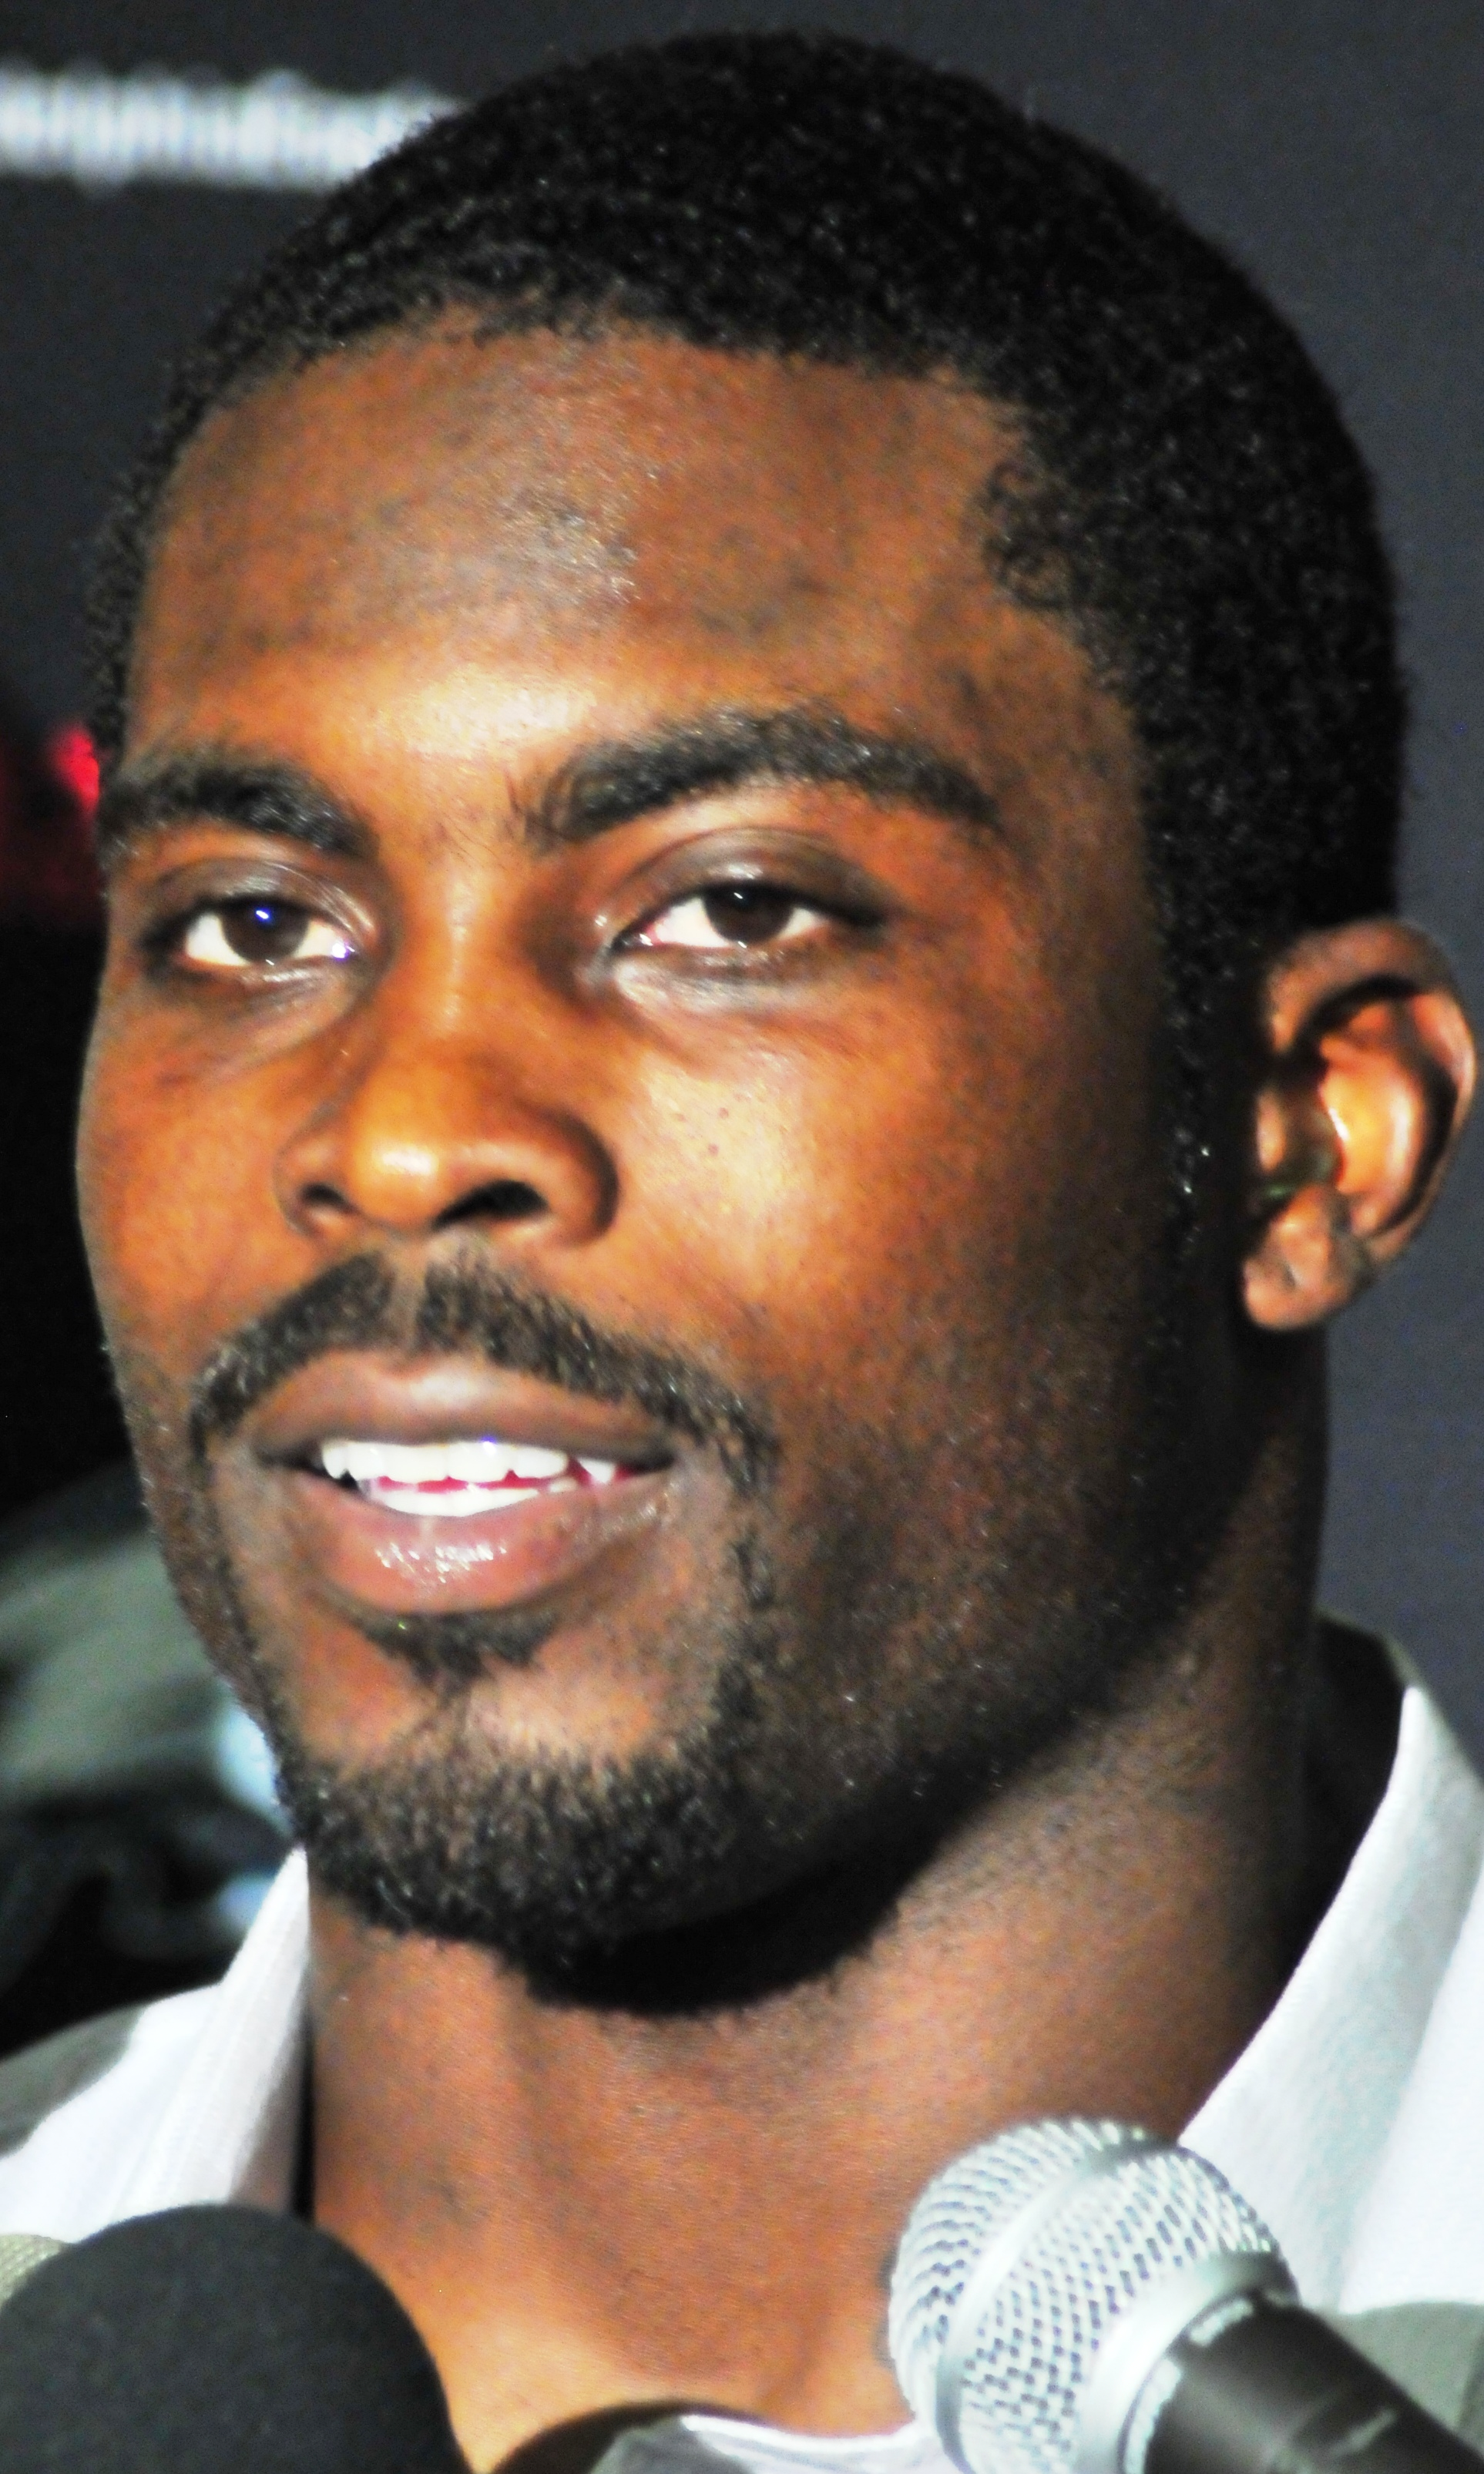 https://i2.wp.com/upload.wikimedia.org/wikipedia/commons/7/7f/Michael-Vick_Jets-vs-Eagles-Sept-3-2009_Post-Game-Interview_%28cropped%29.jpg